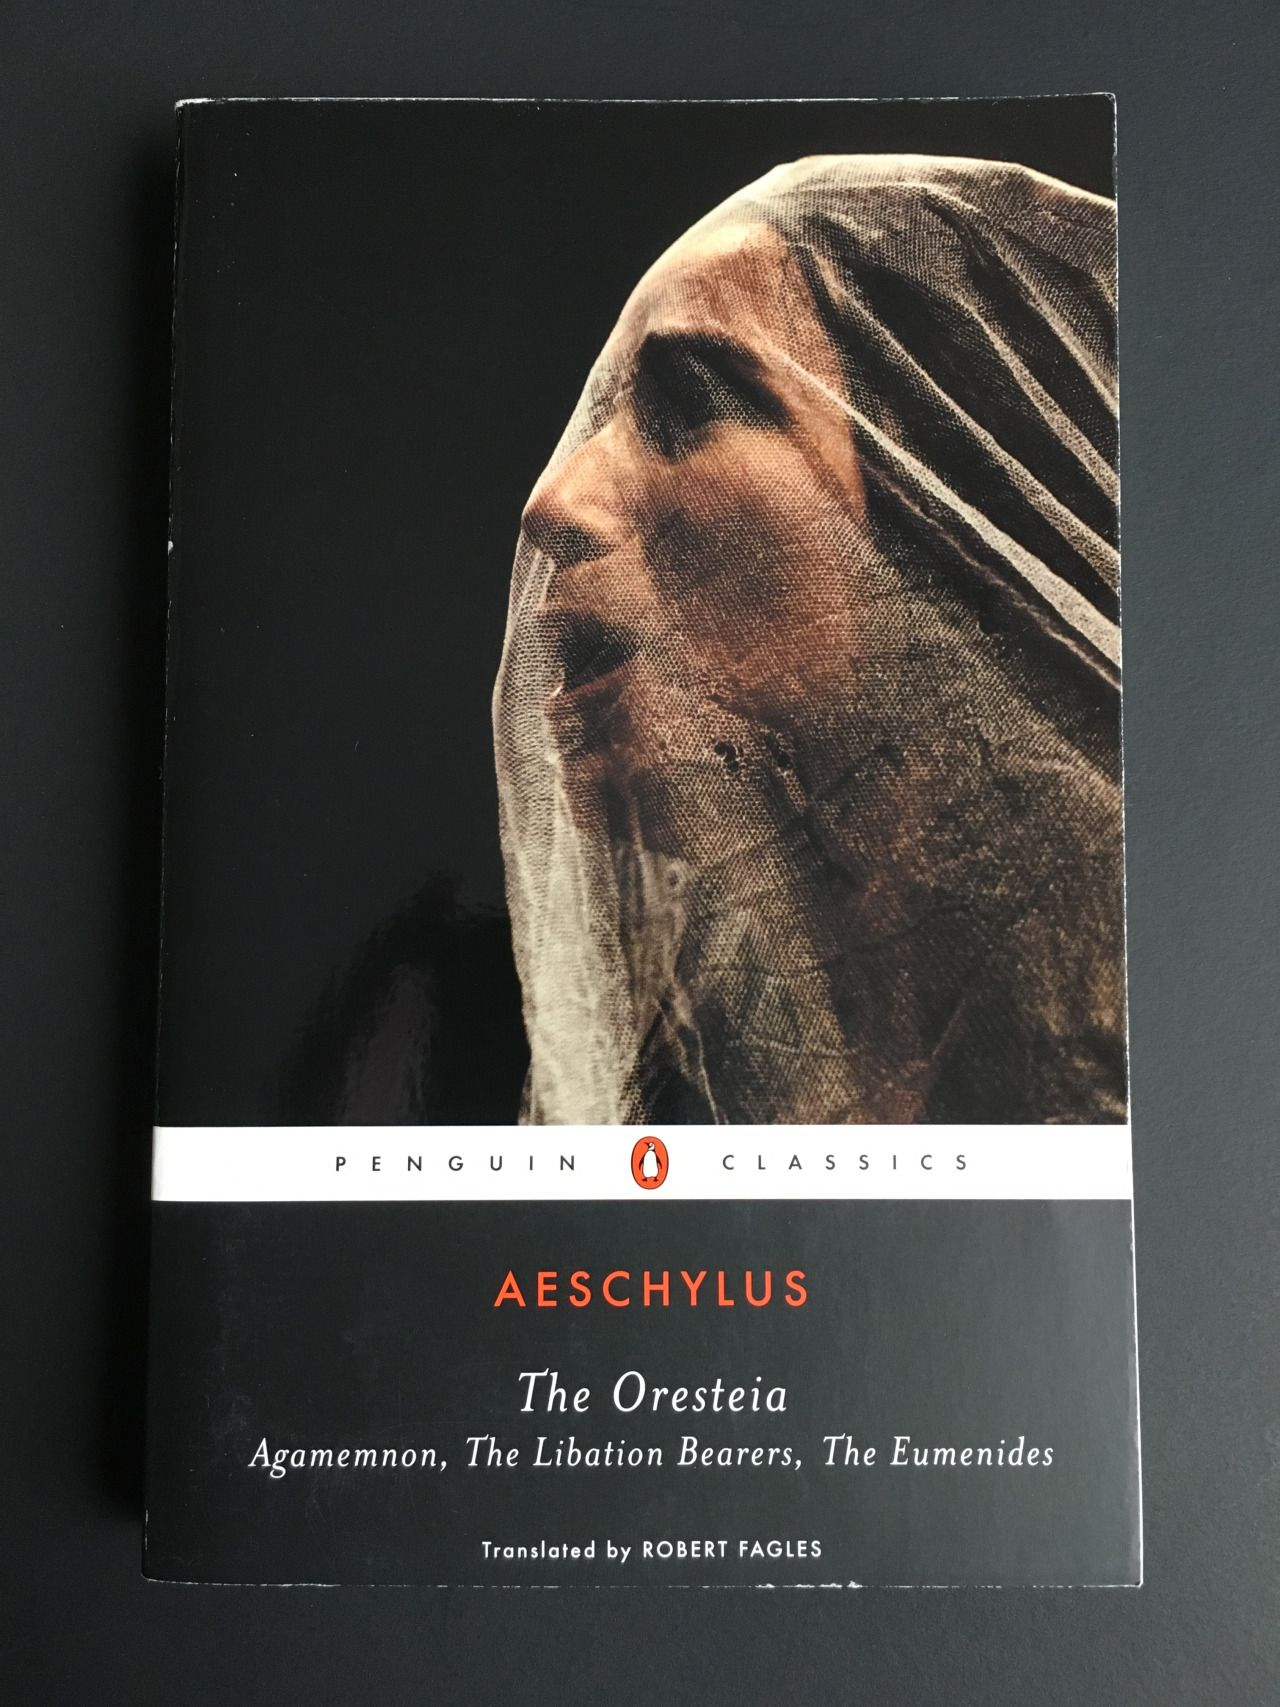 agamemnon by aeschylus essay  agamemnon is the first book in the orenstein trilogy written by the famous greek tragedy writer, aeschylus agamemnon is a story of justice and revenge the story takes place in a city called argos.